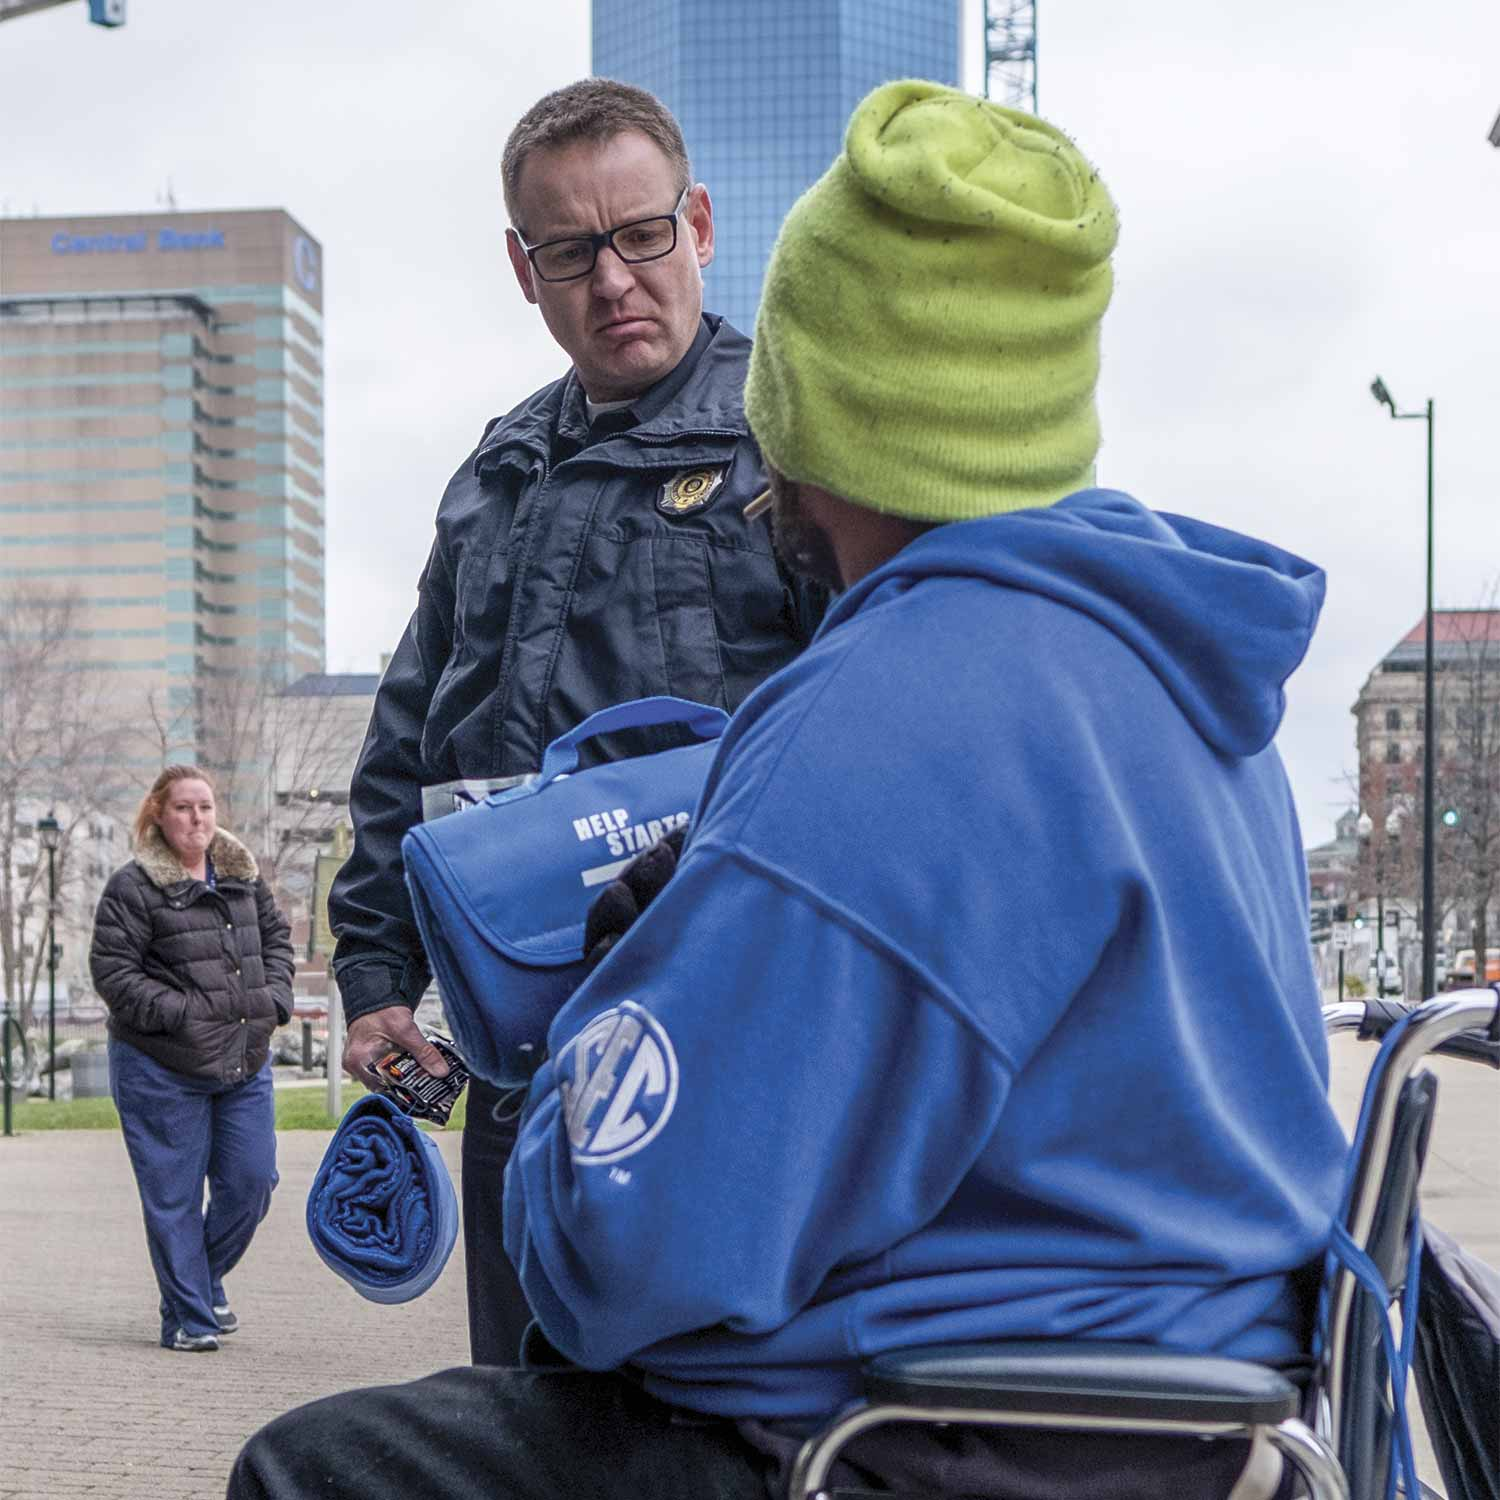 Lexington Police Officer Howard Florence (below), speaks to a homeless individual in downtown Lexington. Working most of his time in downtown, Florence regularly encounters homeless residents in need of assistance. (Photo by Jim Robertson)